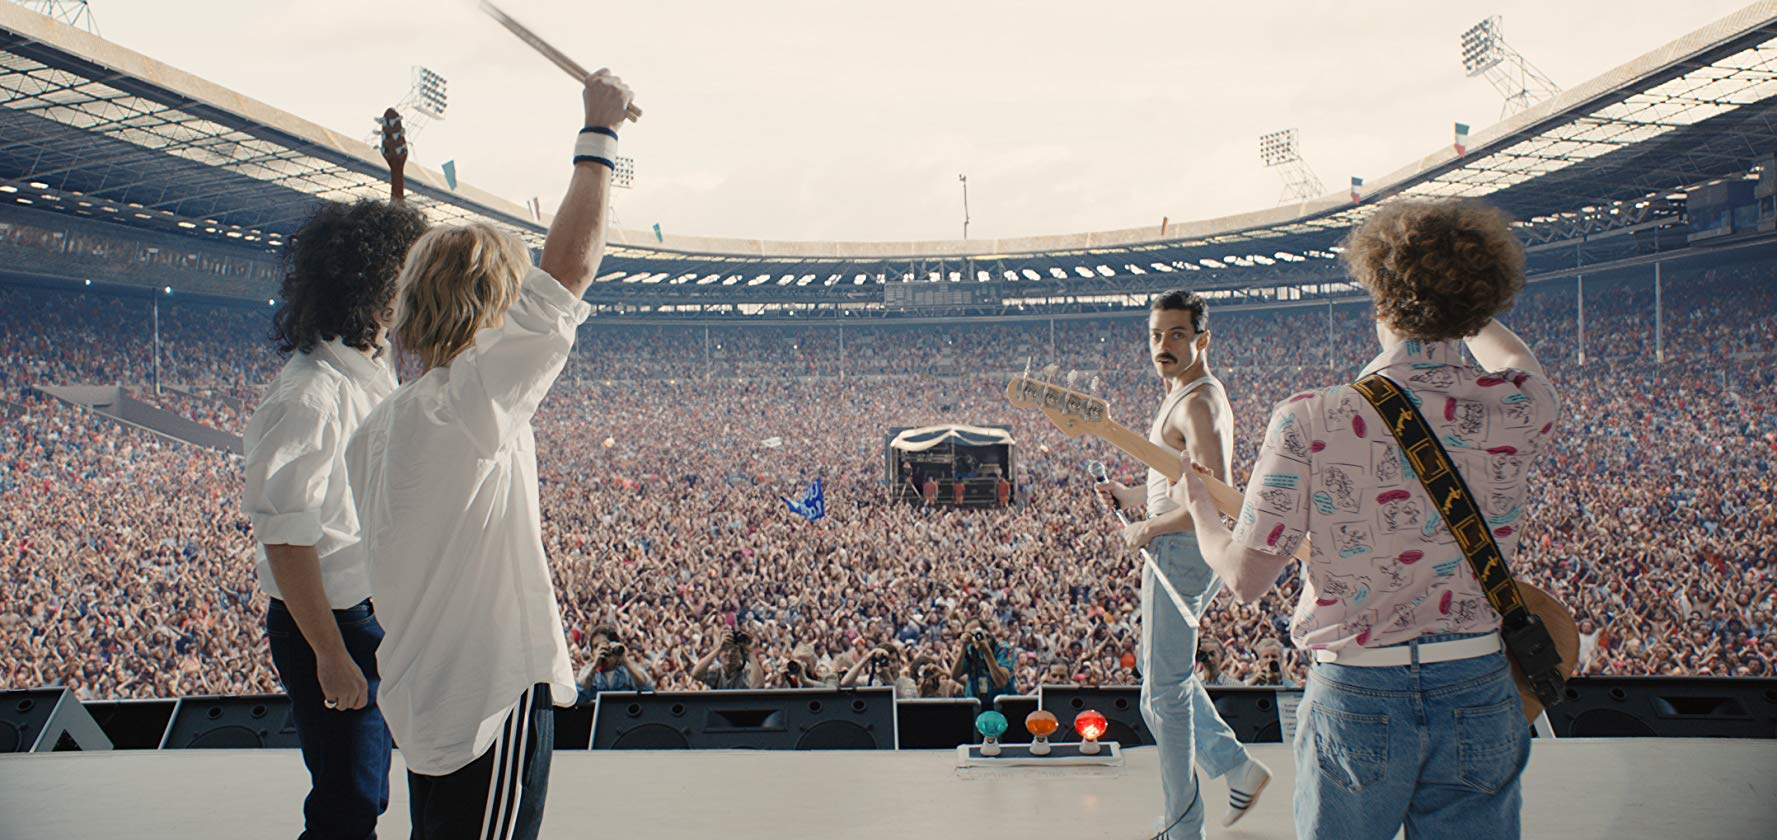 bohemian rhapsody, film reviews, Lucas Mirabella